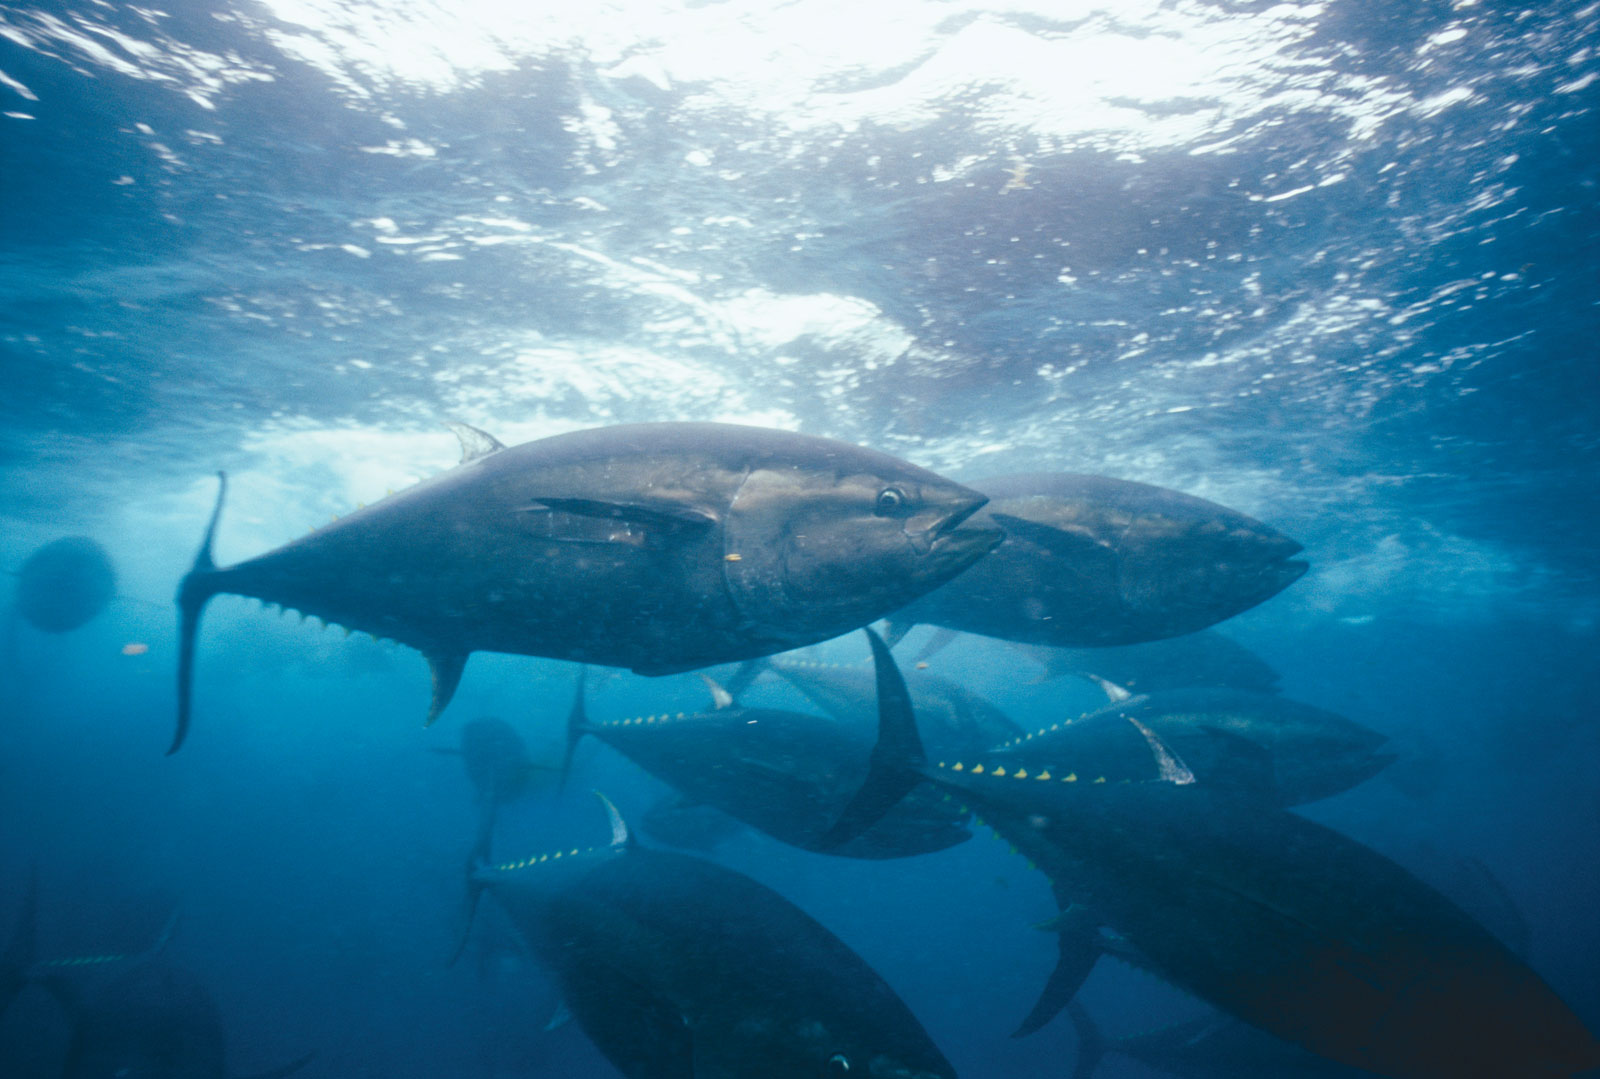 Great bluefin tuna wallpaper